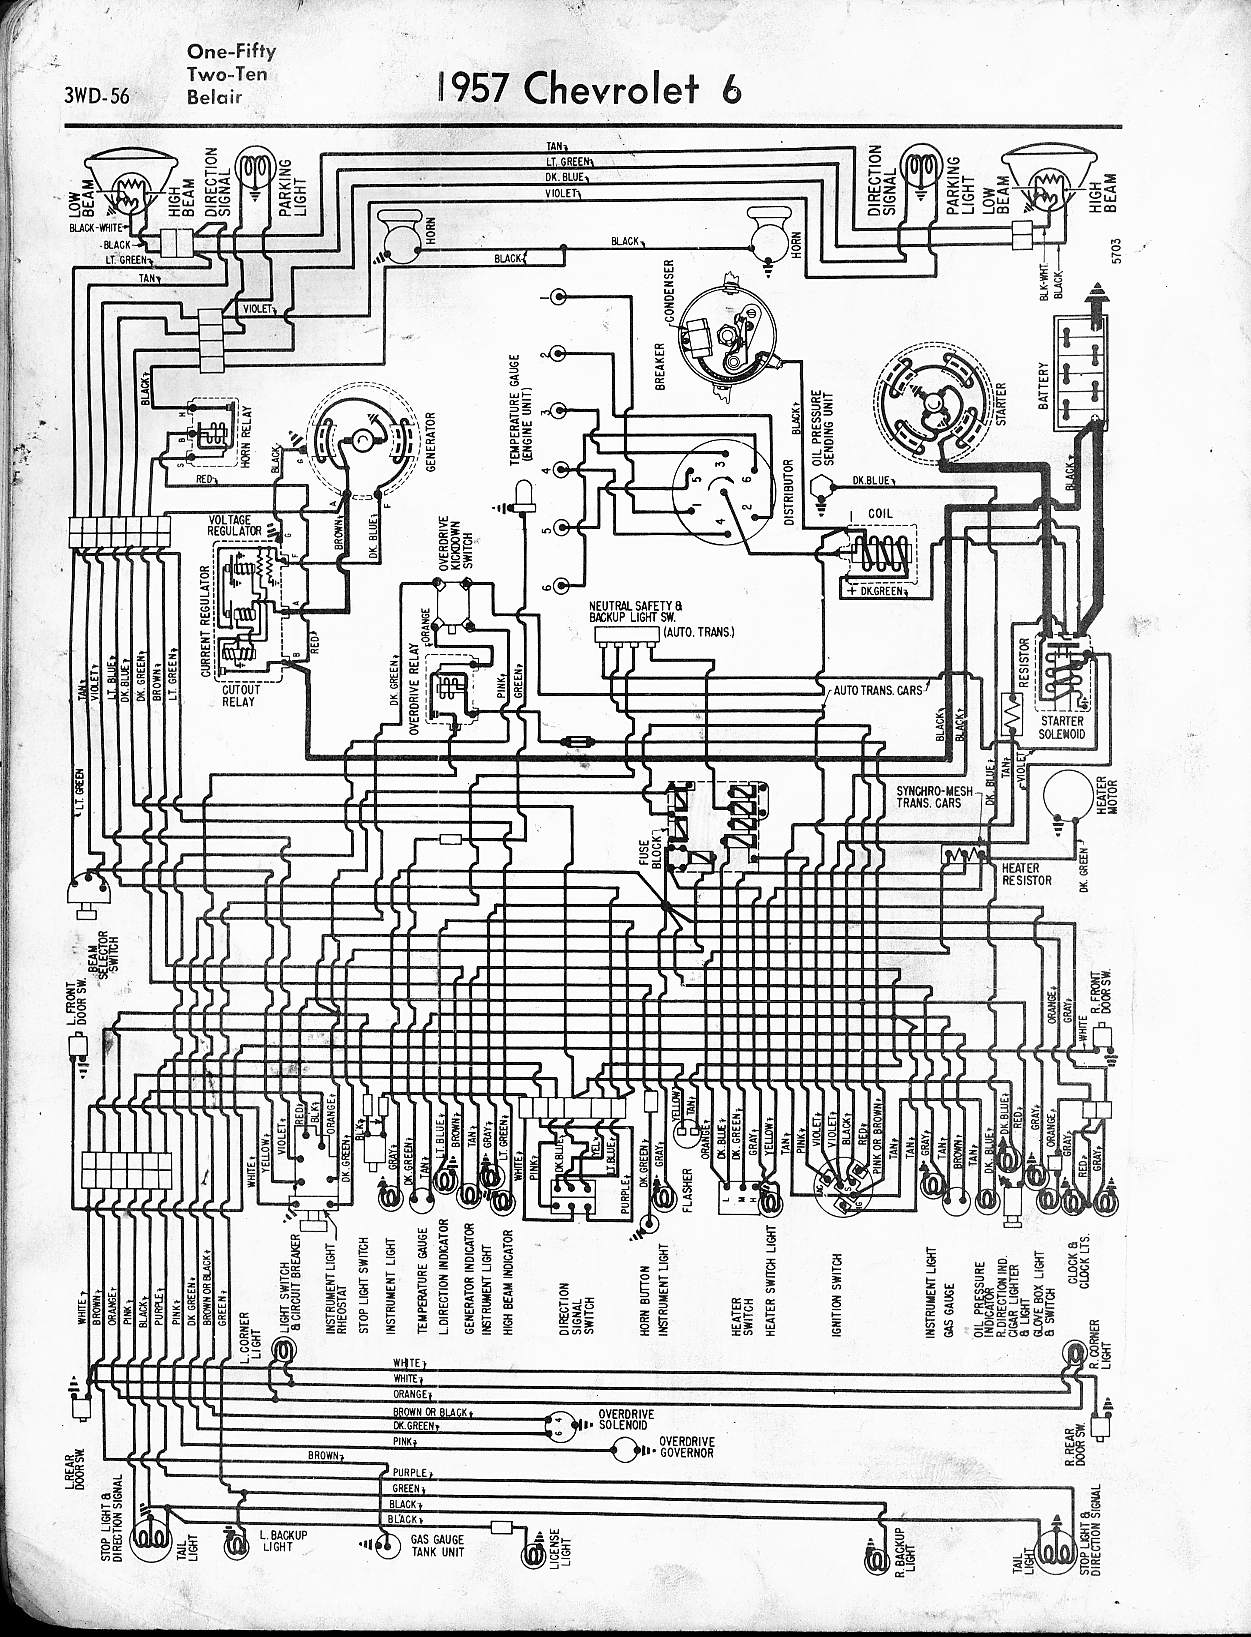 57 chevy wiring diagram wiring diagram wrg 7488] 1957 chevy fuse box